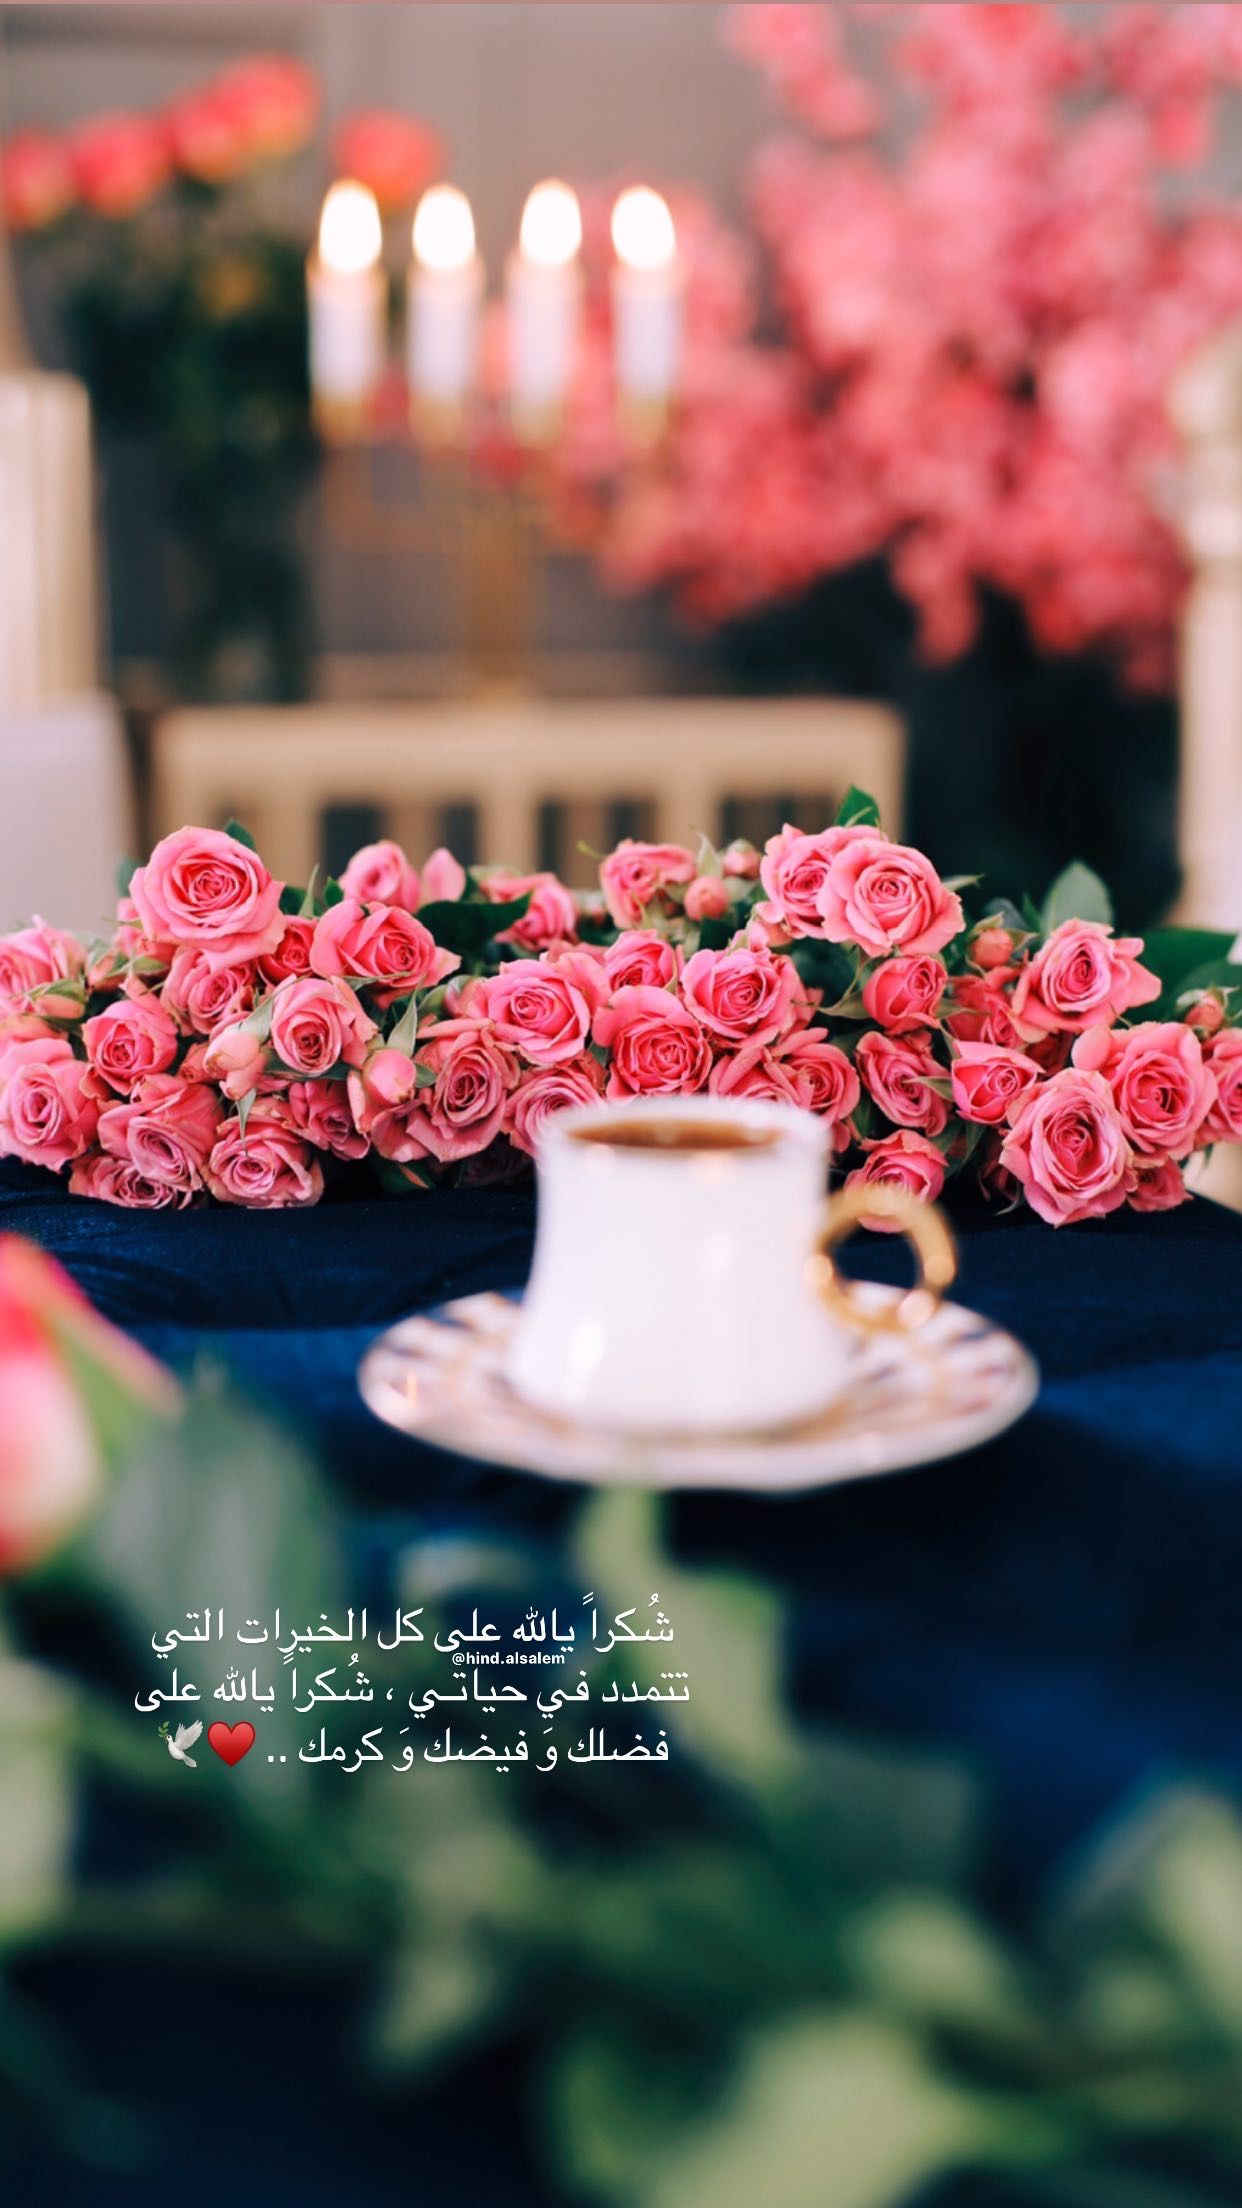 Pin By Mais Samhouri On أدعيه In 2021 Arabic Love Quotes Morning Images Table Decorations